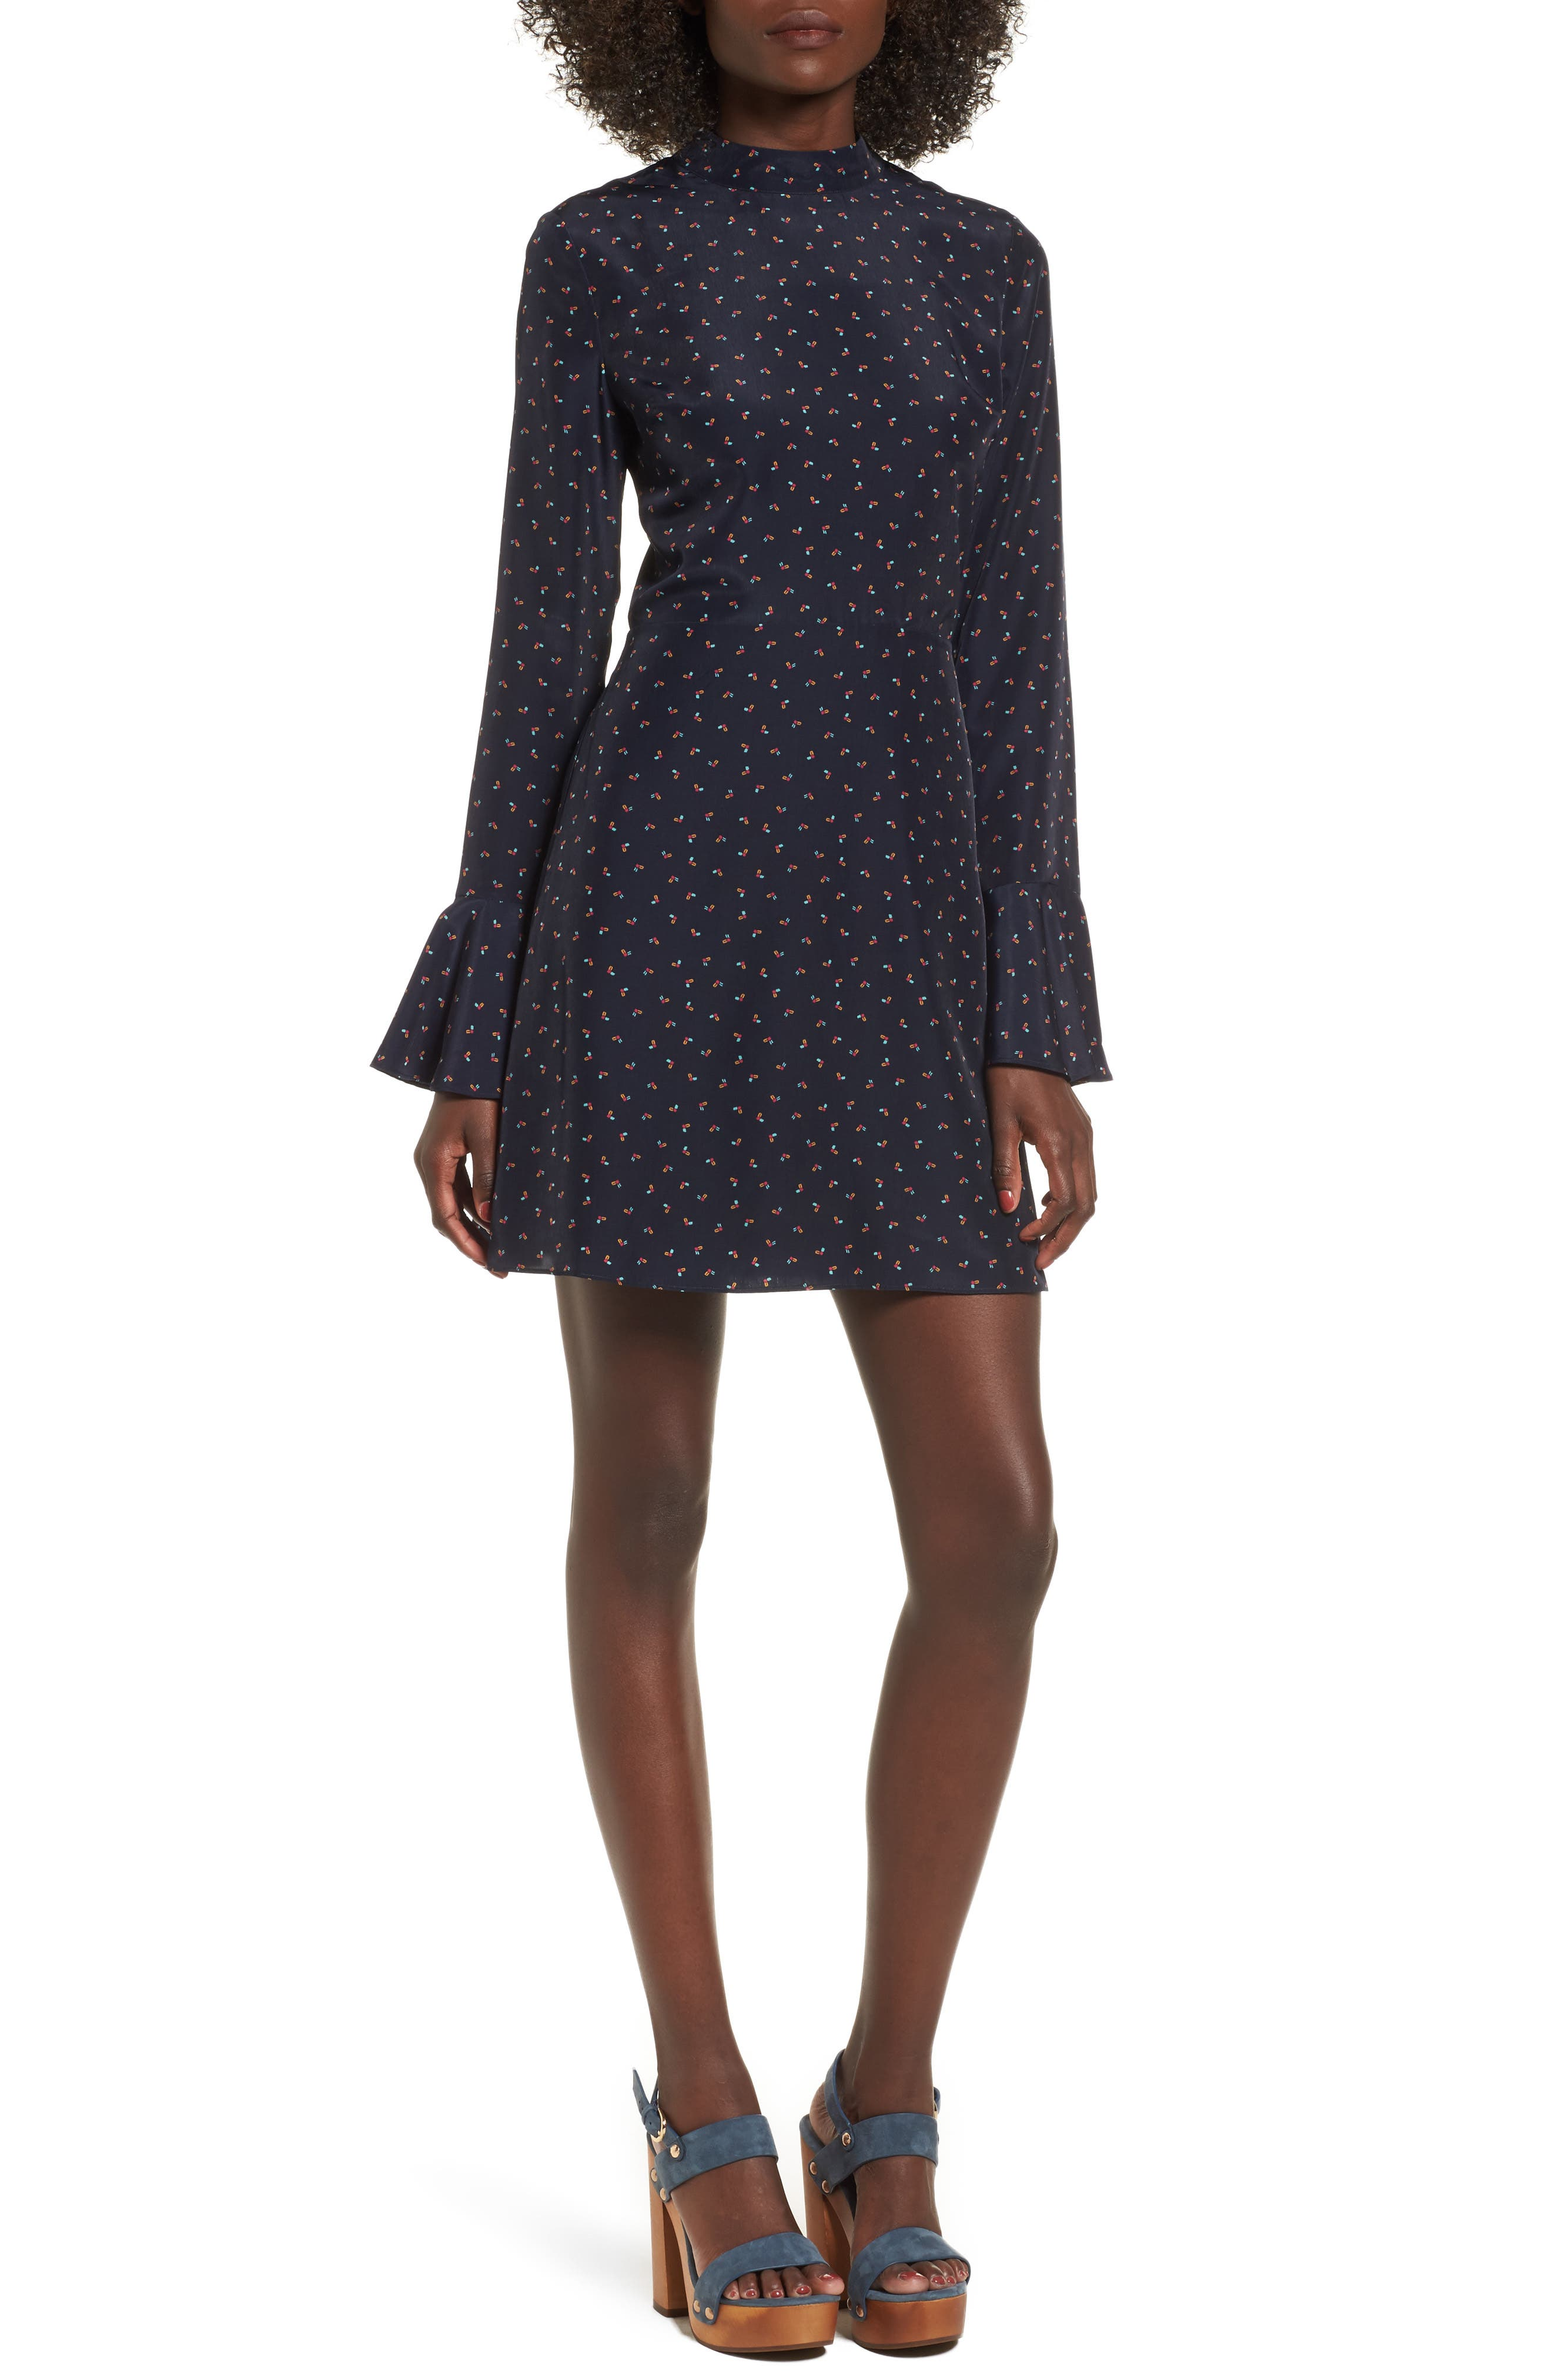 J.O.A. High Neck Fit & Flare Dress